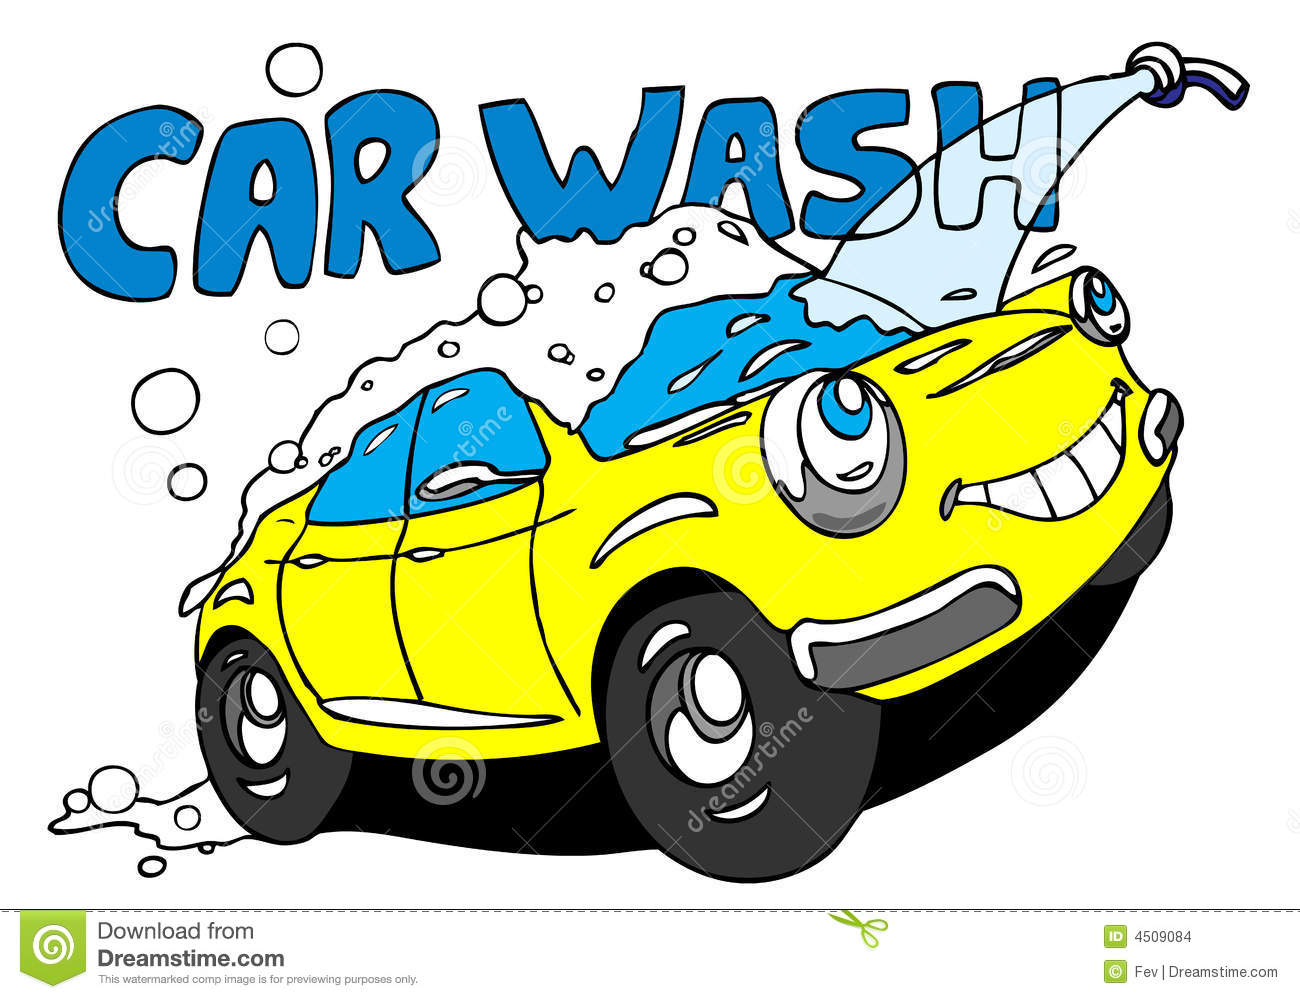 Car washing clipart banner black and white stock Hand wash car clipart - ClipartFest banner black and white stock